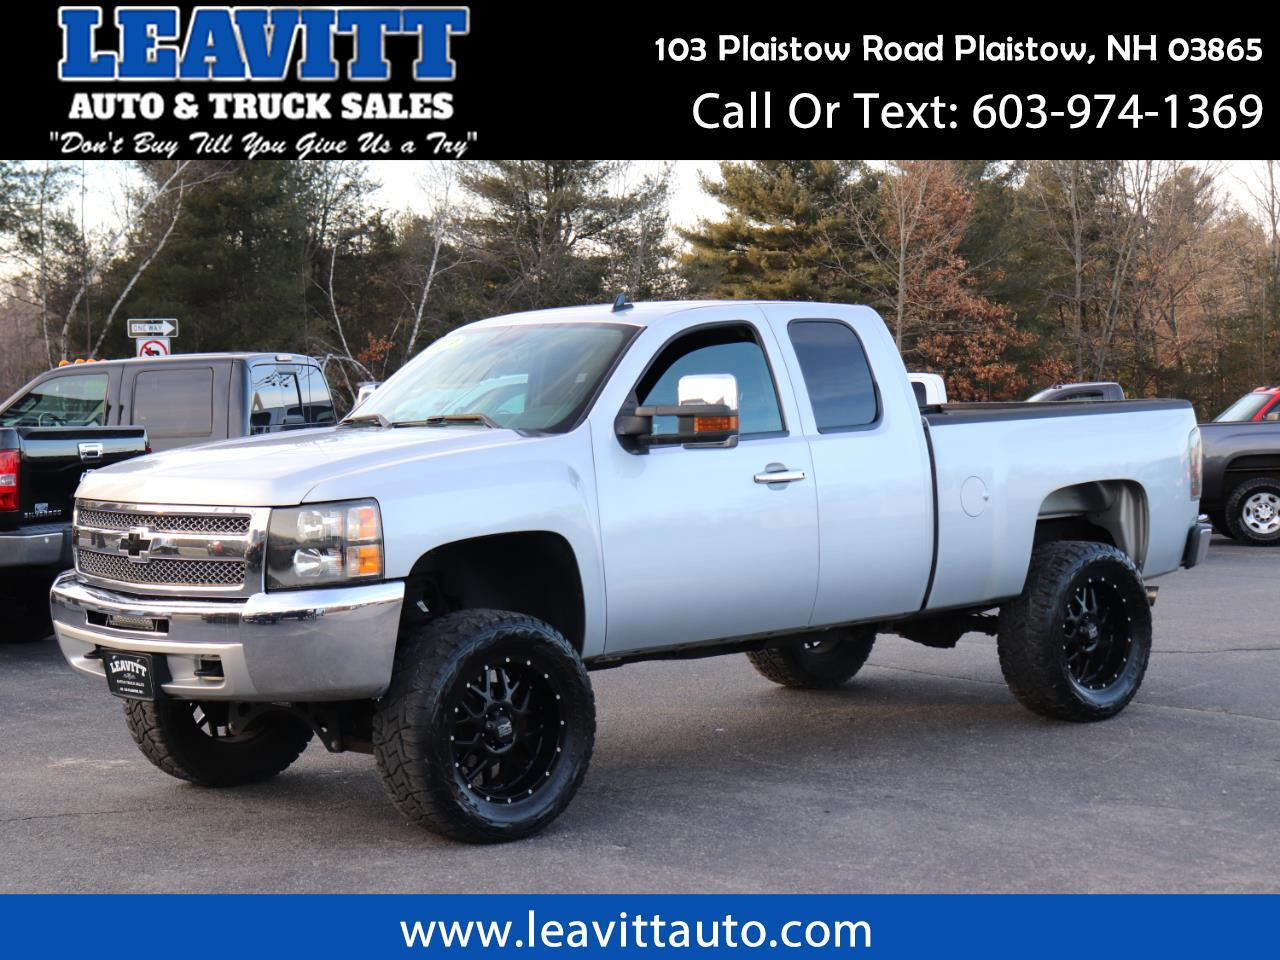 2013 Chevrolet Silverado 1500 LT EXTENDED CAB LIFTED 66K MILES!!